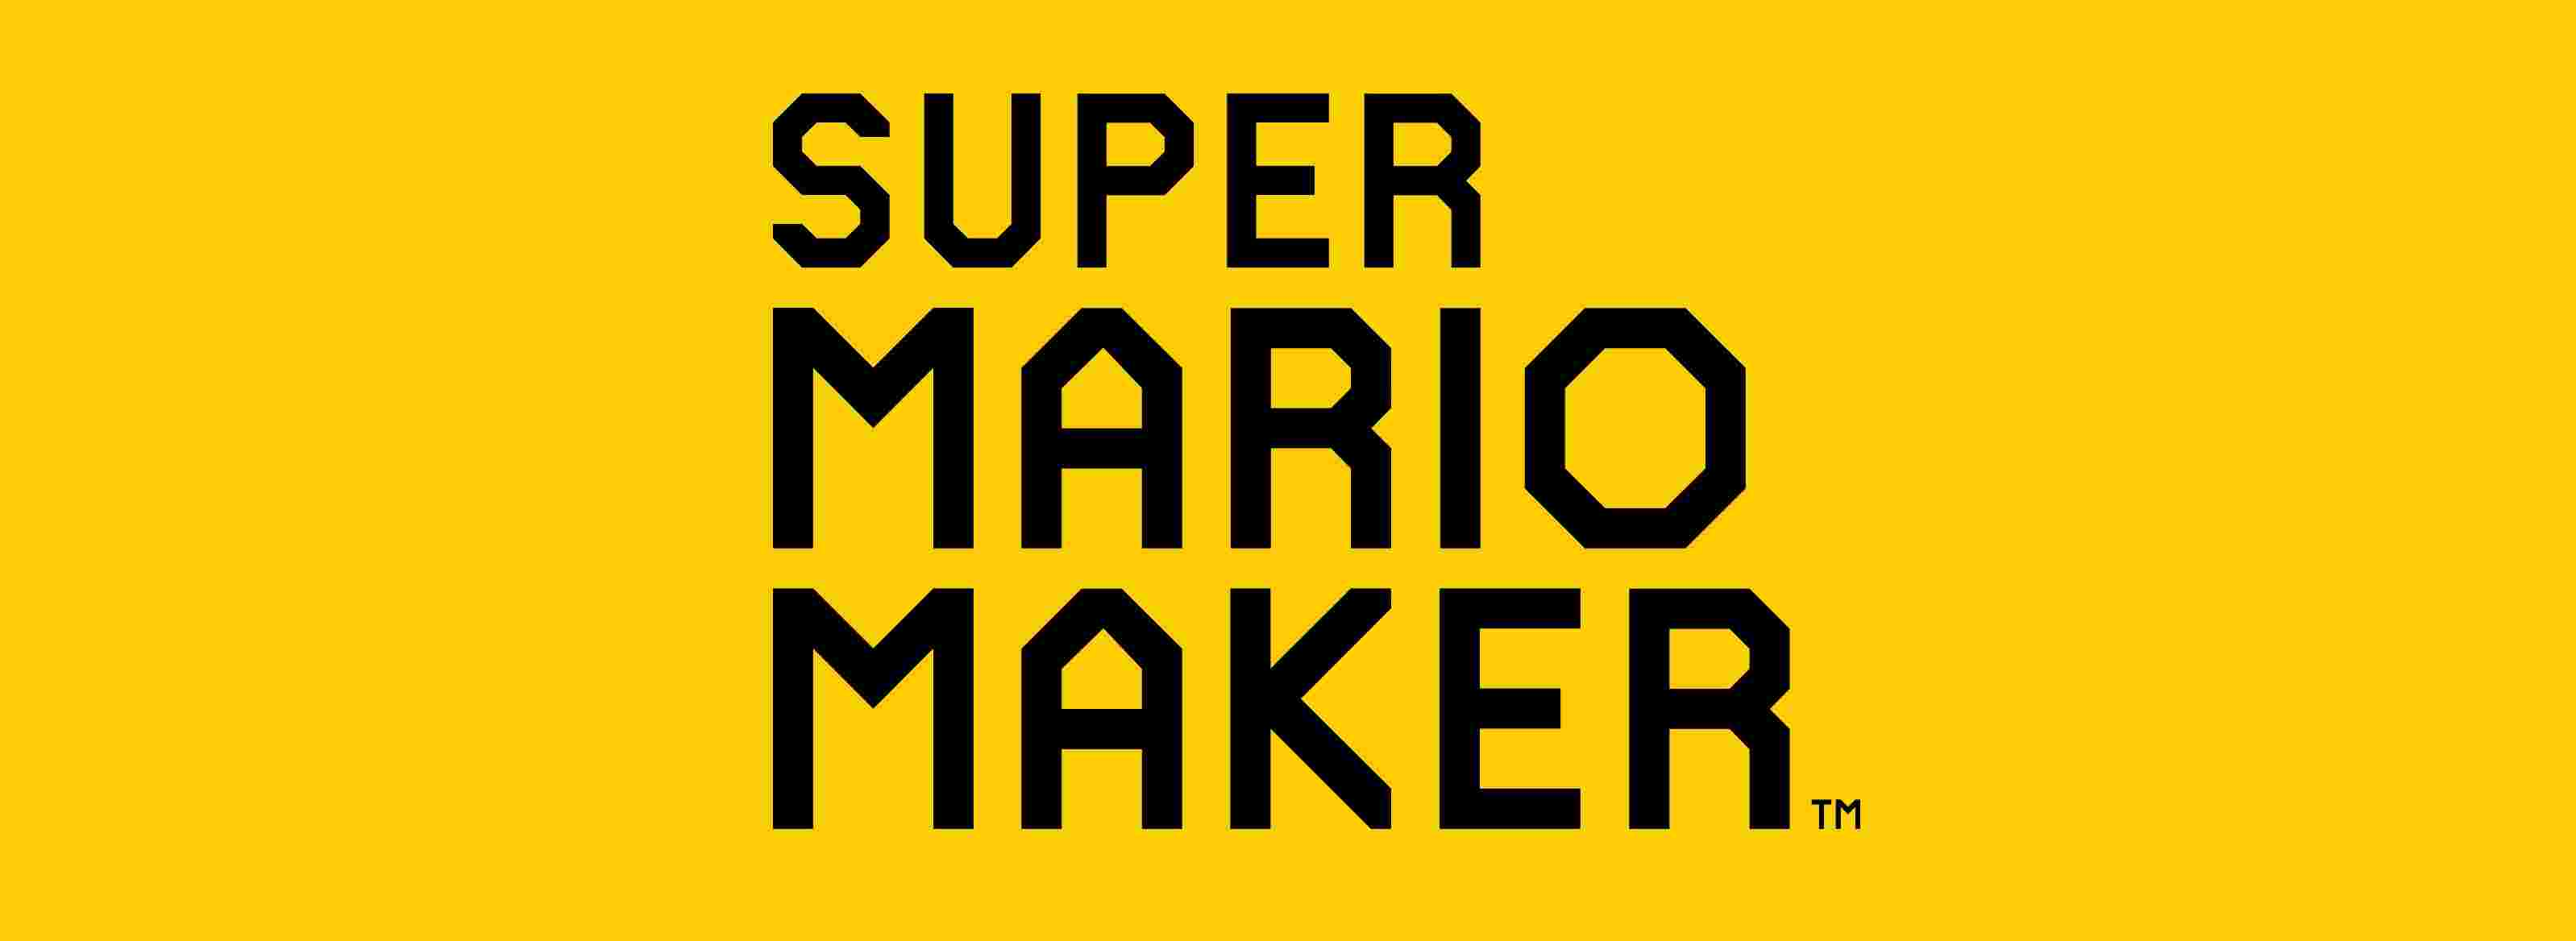 1434641497-super-mario-maker-logo